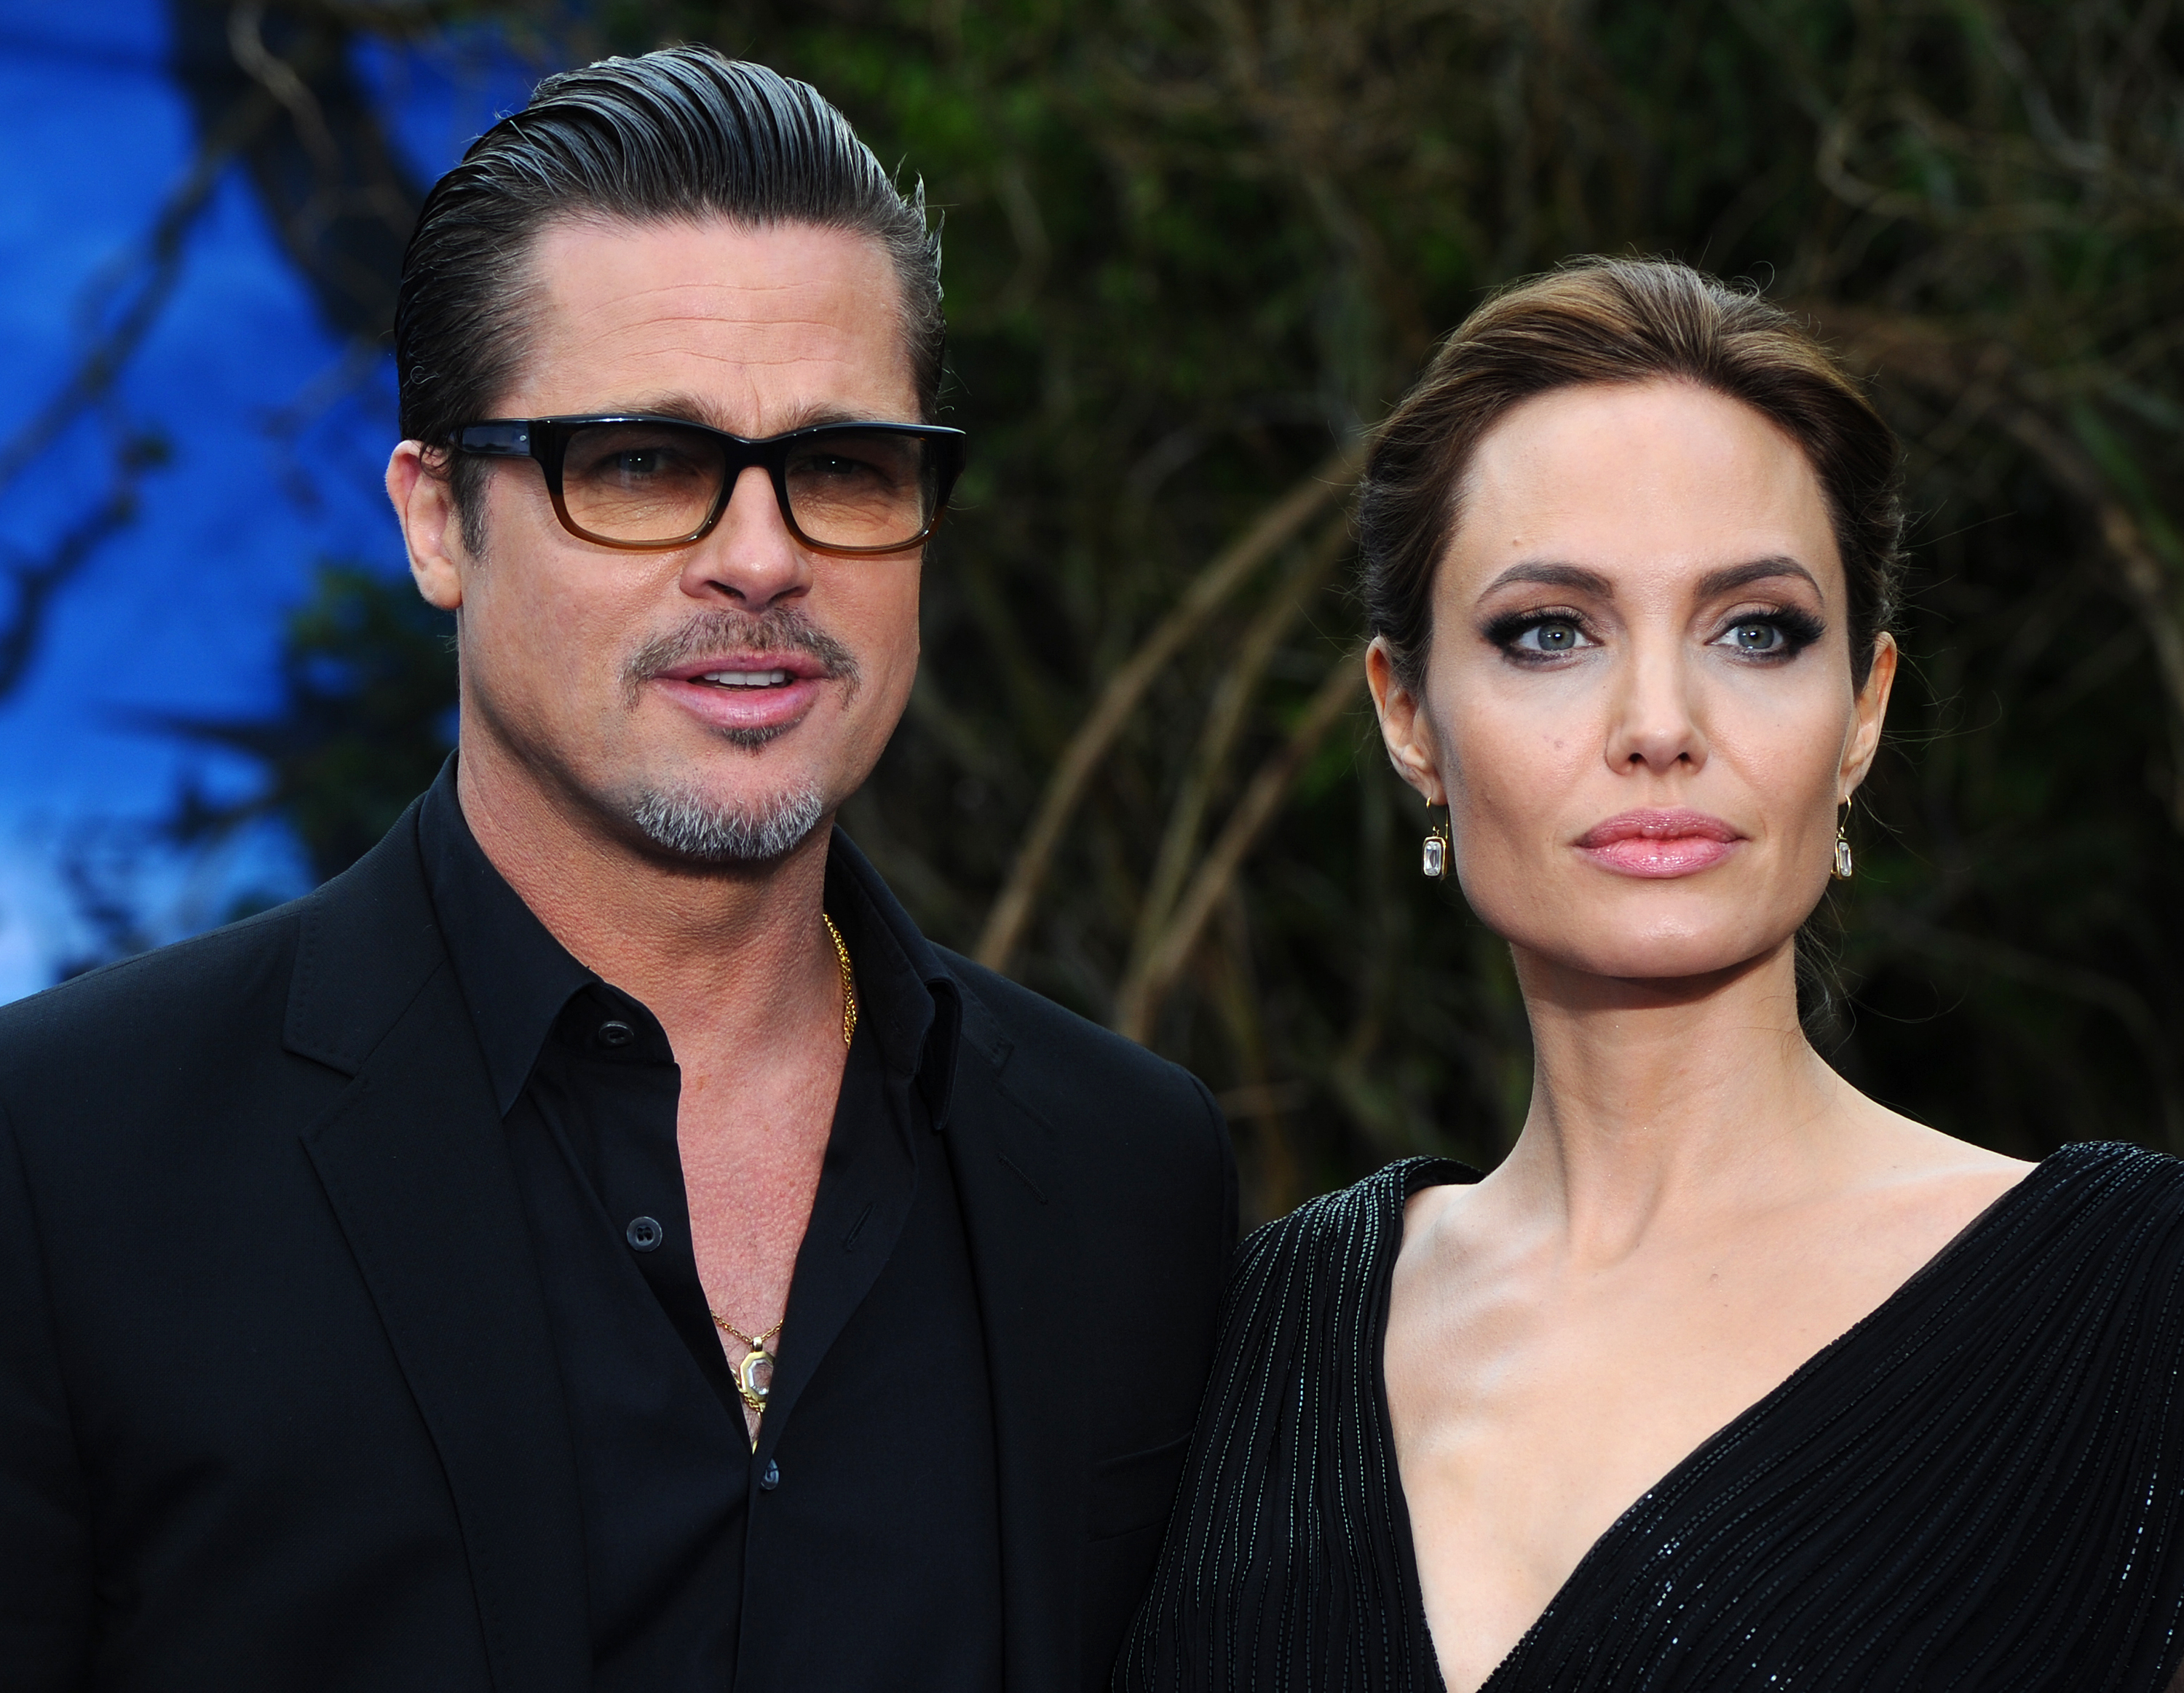 Brad Pitt just said the most mature thing about his and Angelina Jolie's divorce